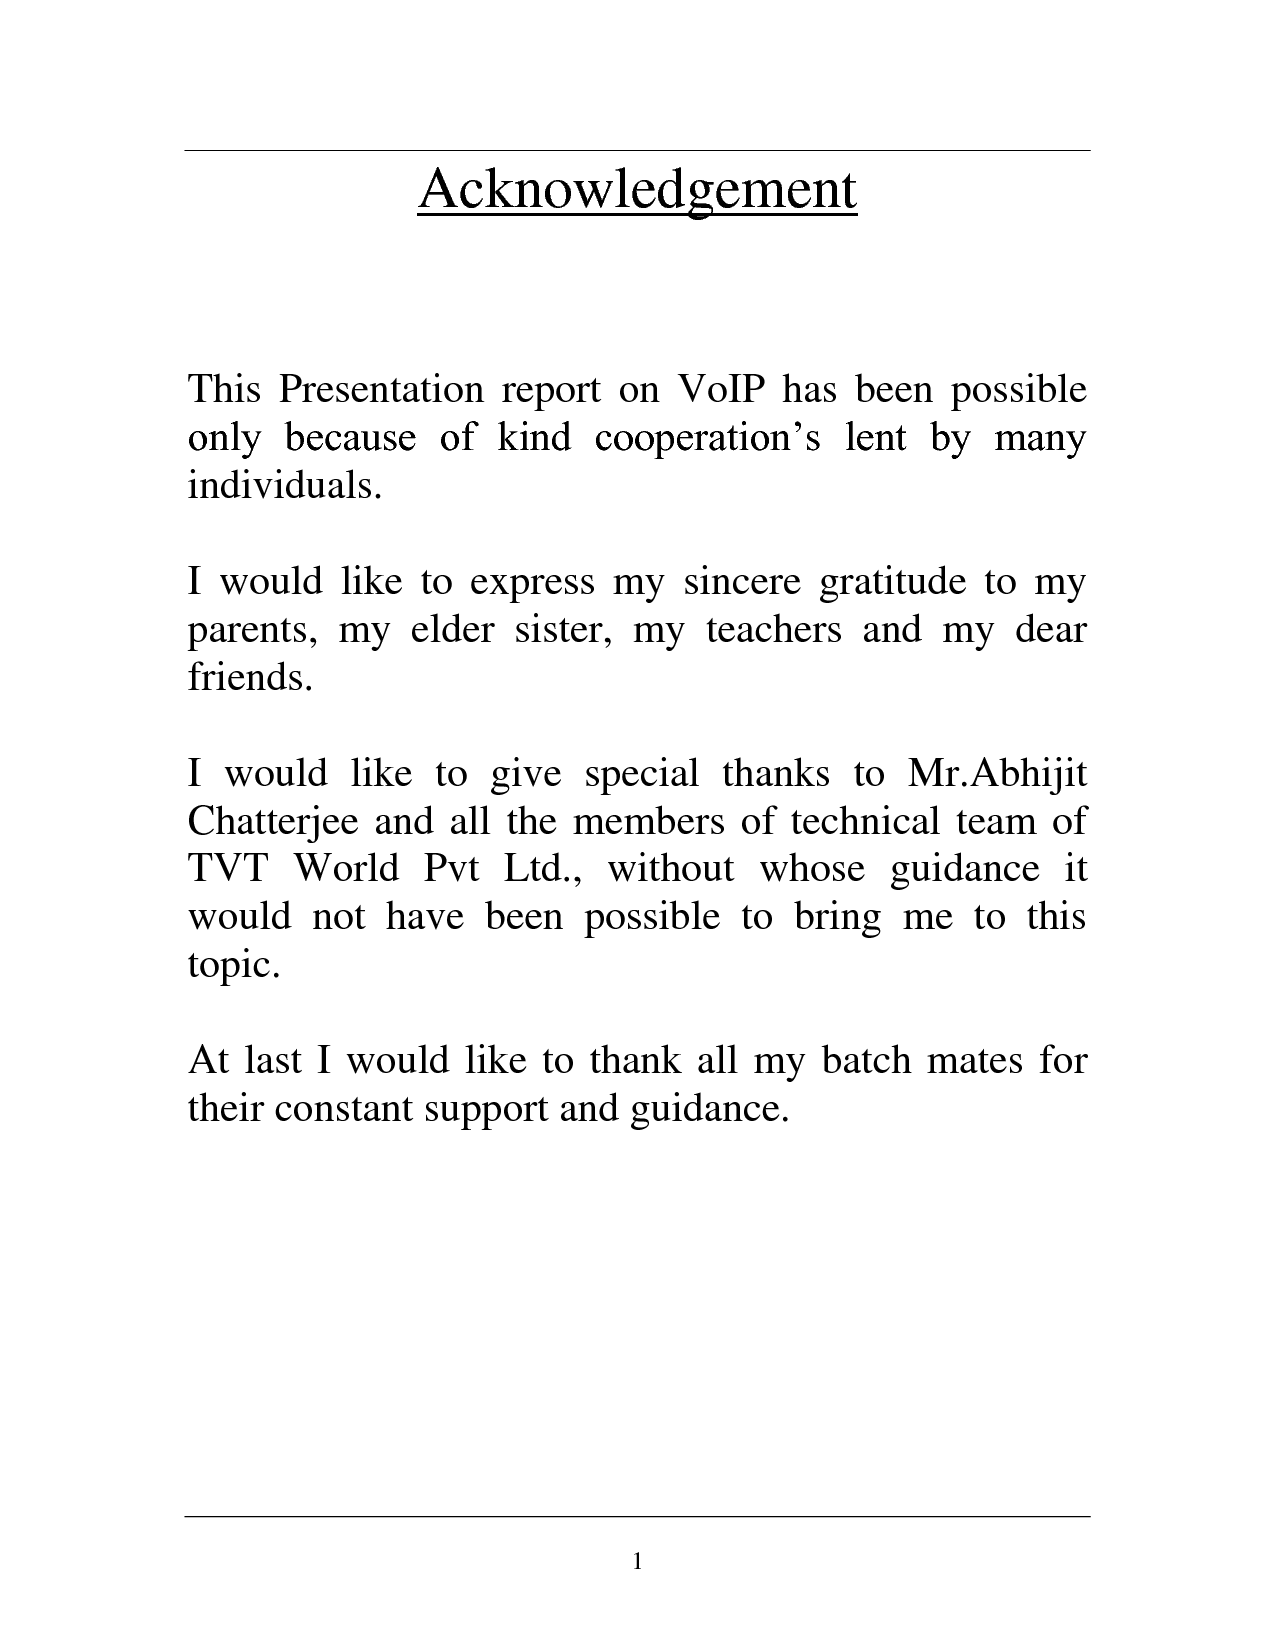 Acknowledgement Quotes For Work Quotesgram